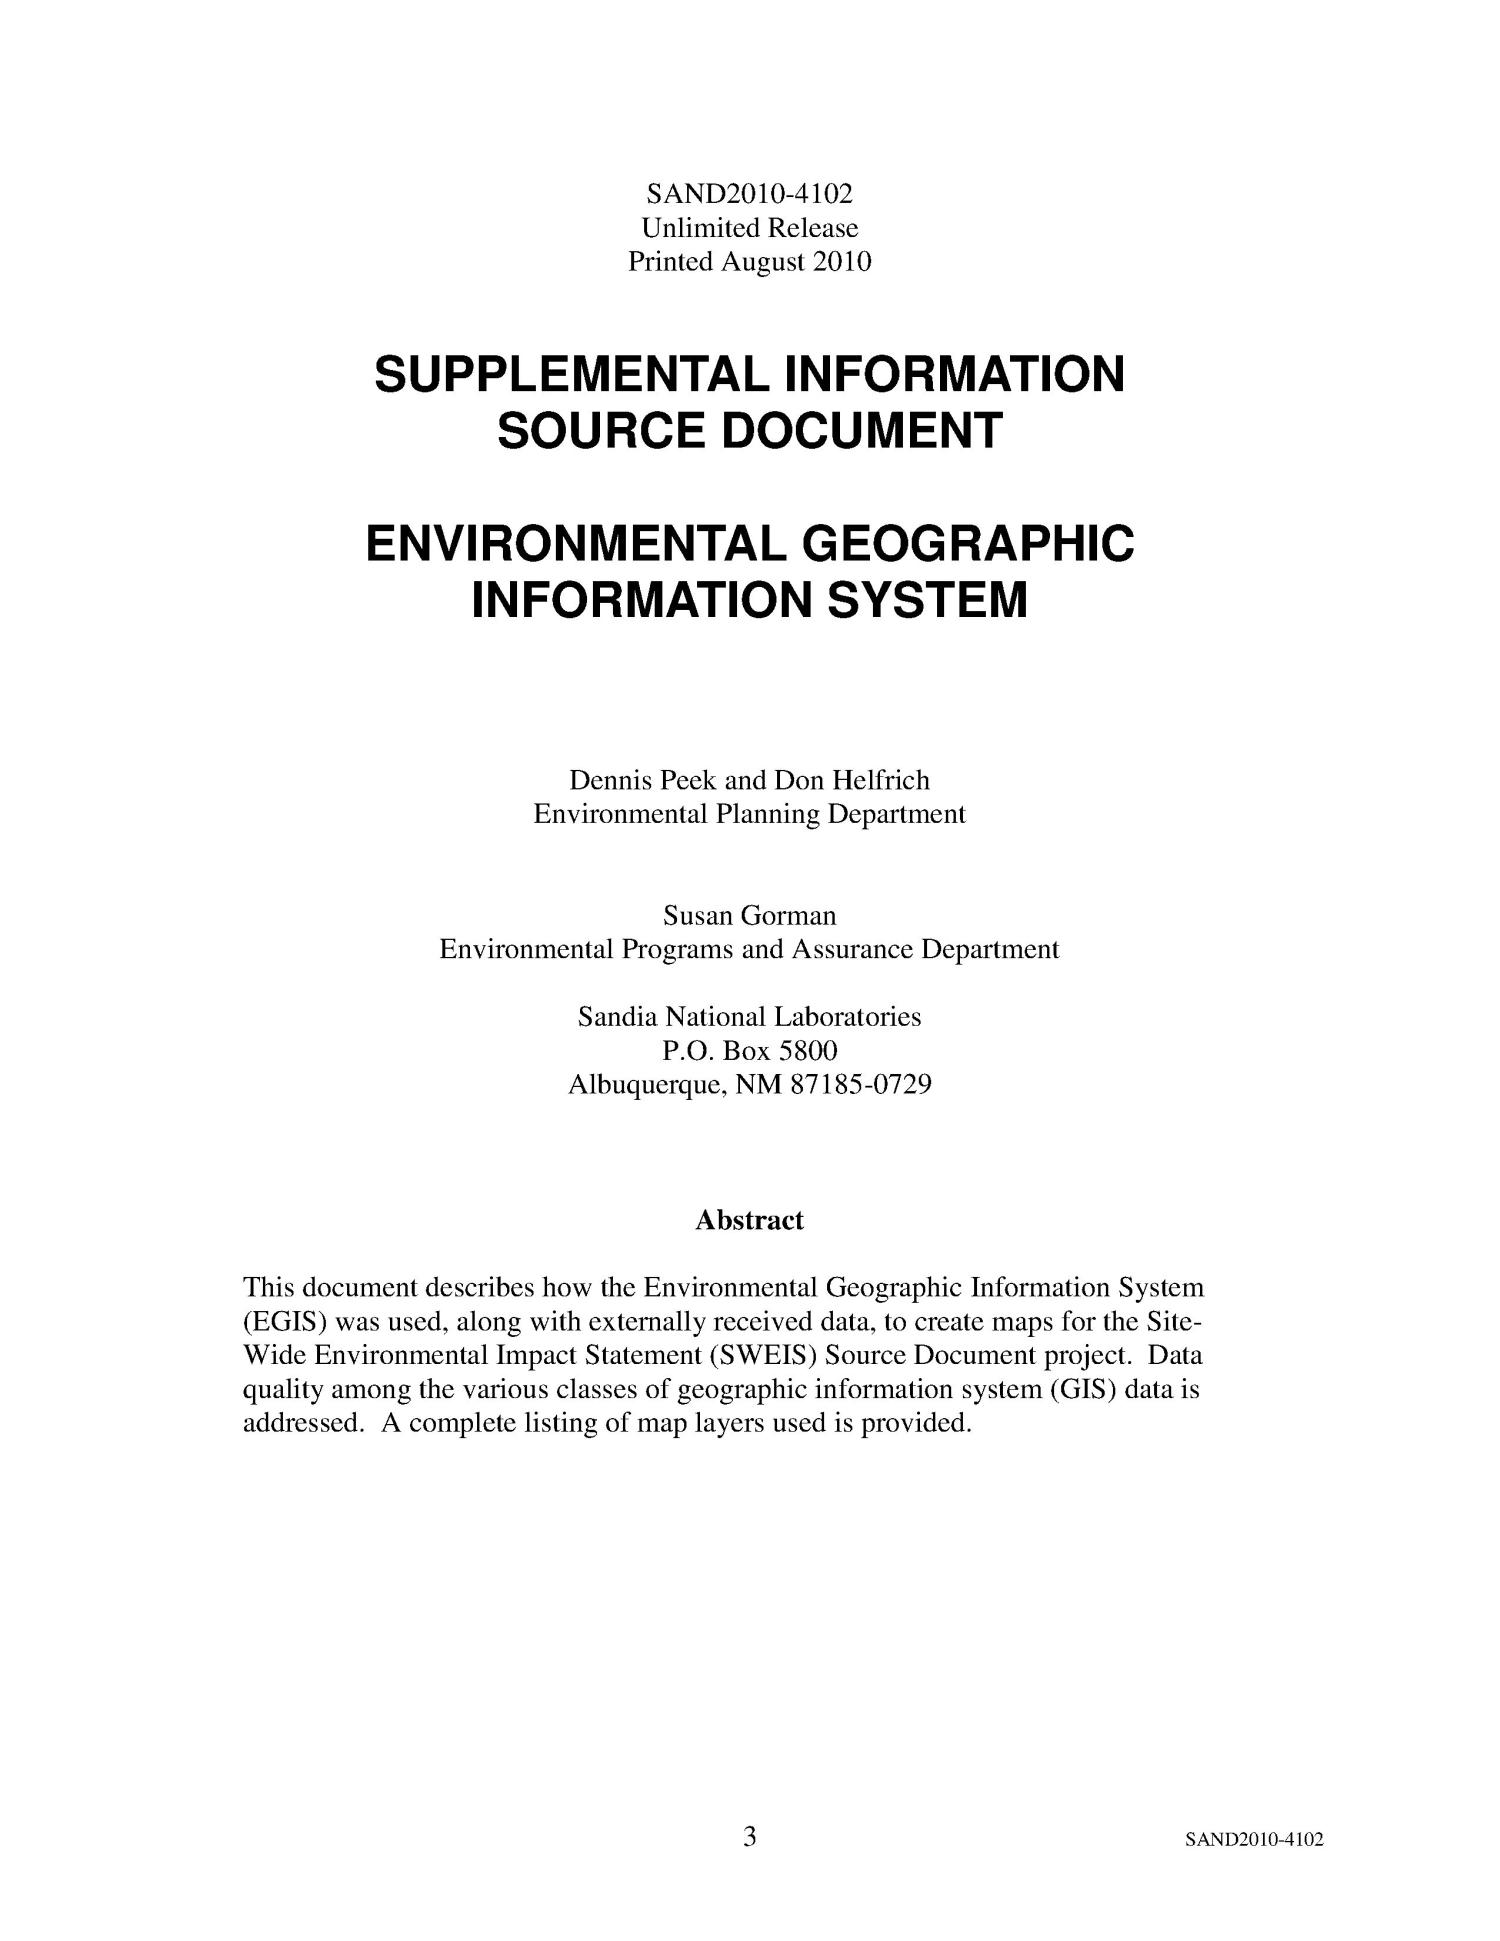 Environmental geographic information system.                                                                                                      [Sequence #]: 3 of 22